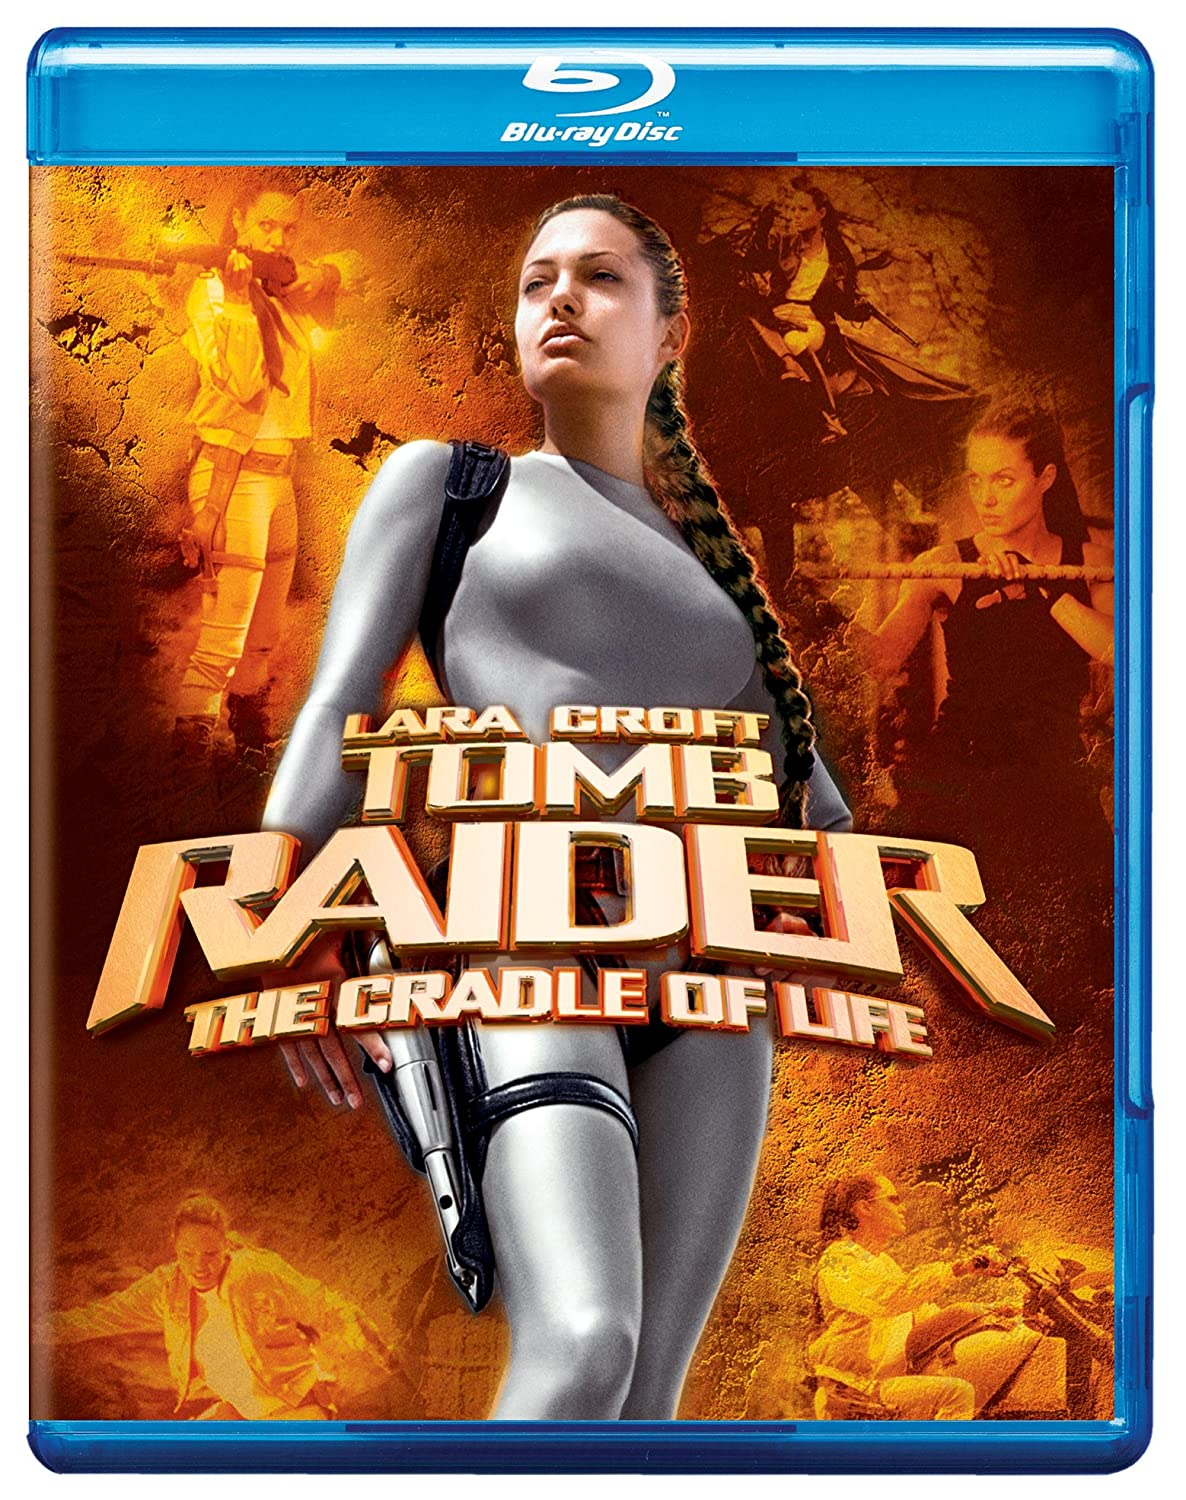 Lara Croft Tomb Raider 2 (2003) BluRay 720p 1.1GB ( Hindi – English ) AC3 ESubs MKV